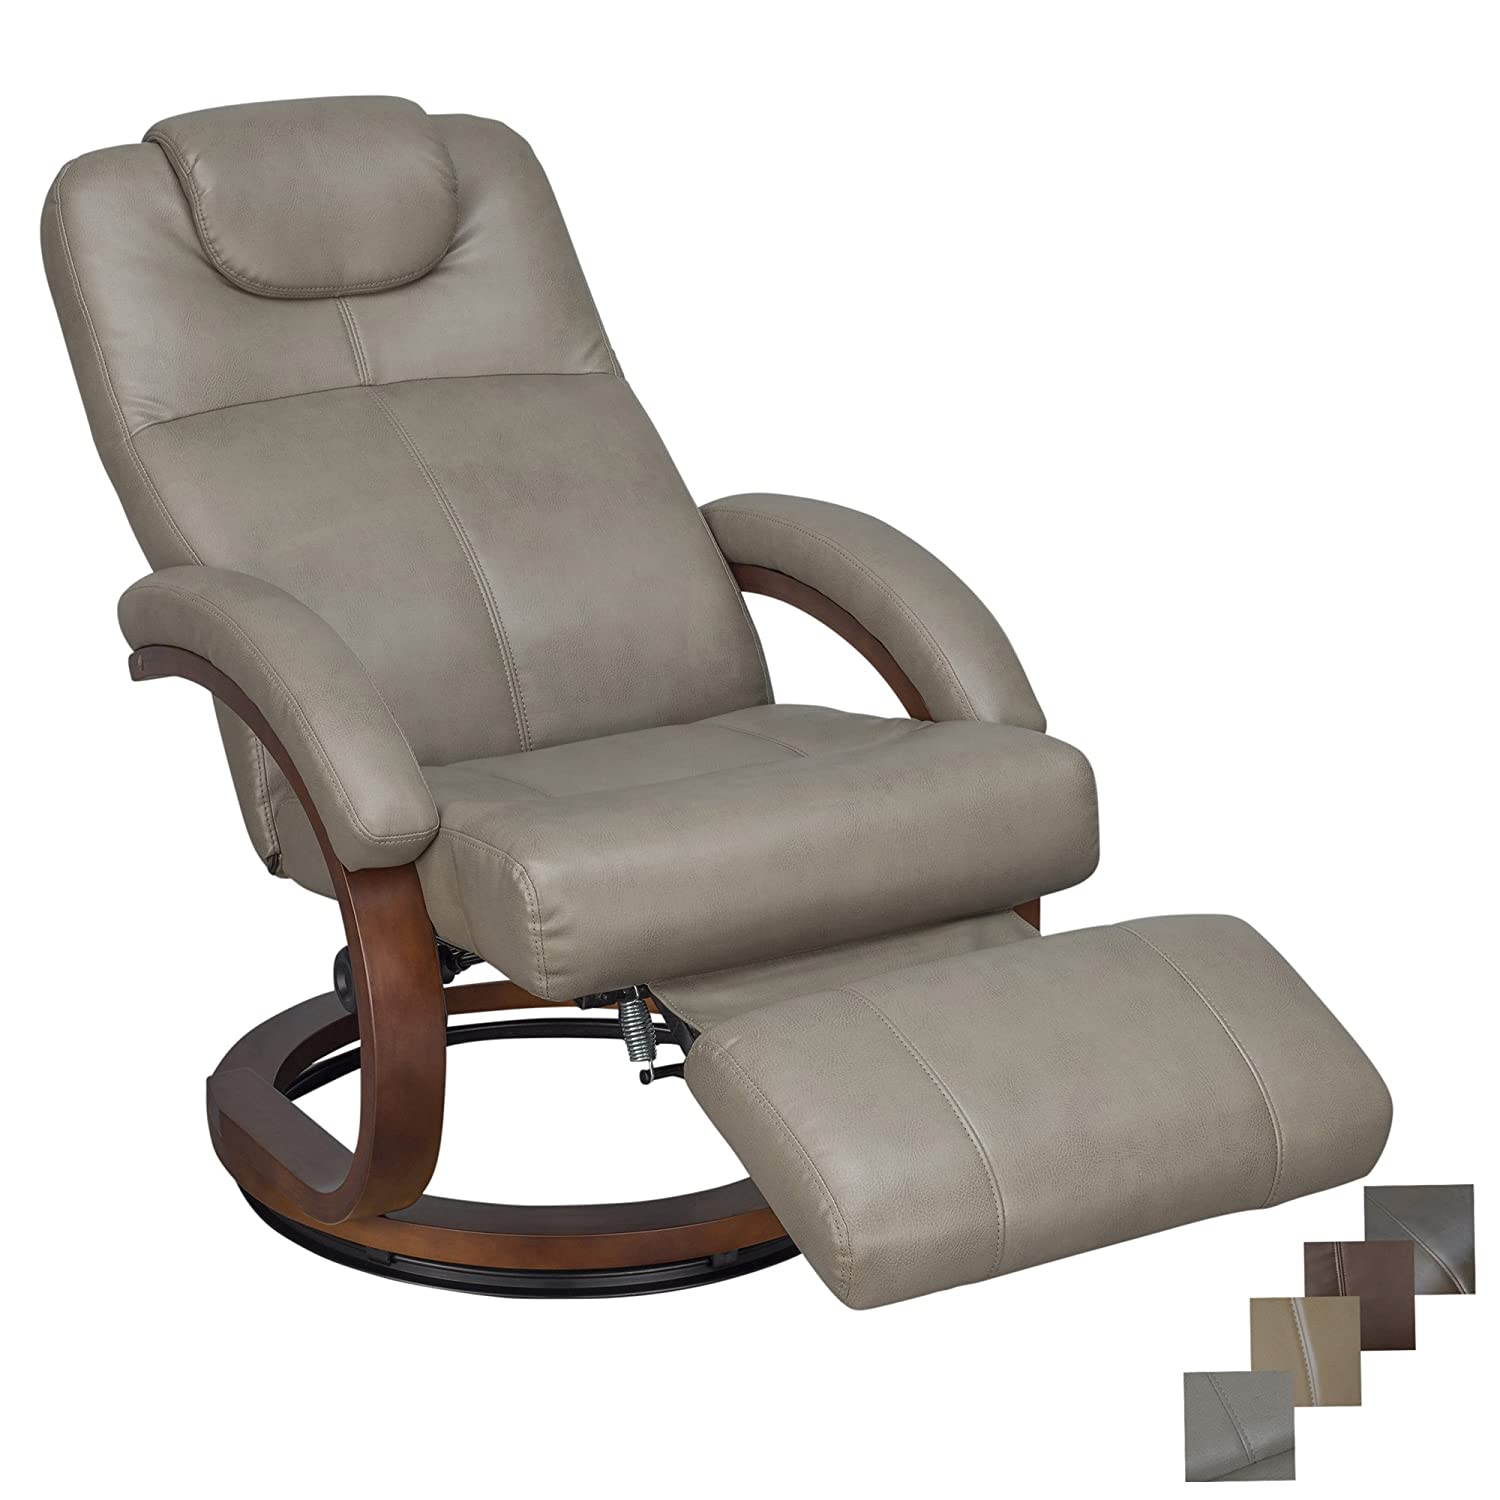 Rv Chairs Recliners >> Recpro Charles 28 Rv Euro Chair Recliner Modern Design Rv Furniture 1 Putty